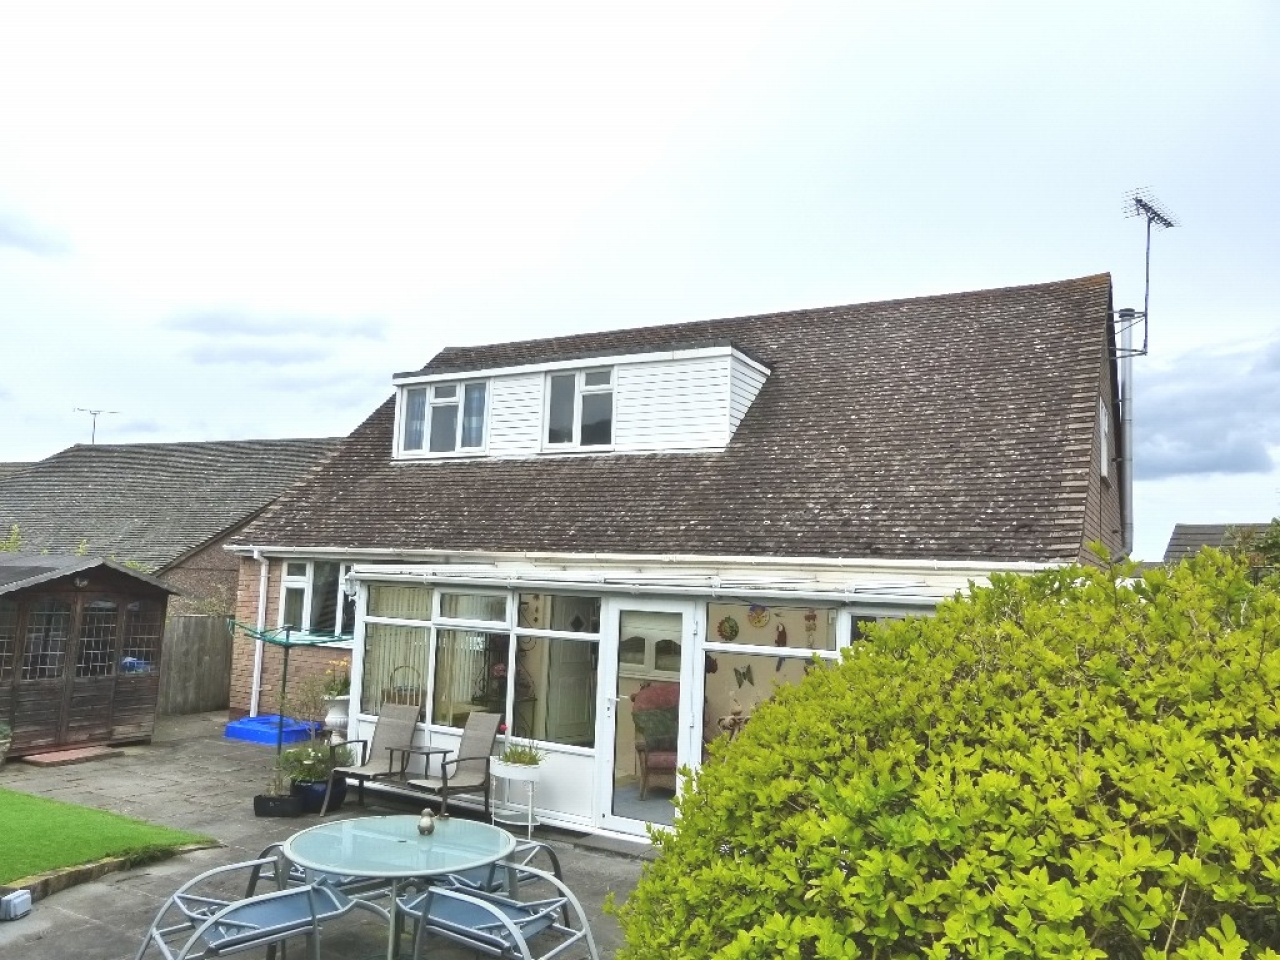 4 bedroom detached bungalow SSTC in Abergele - Photograph 13